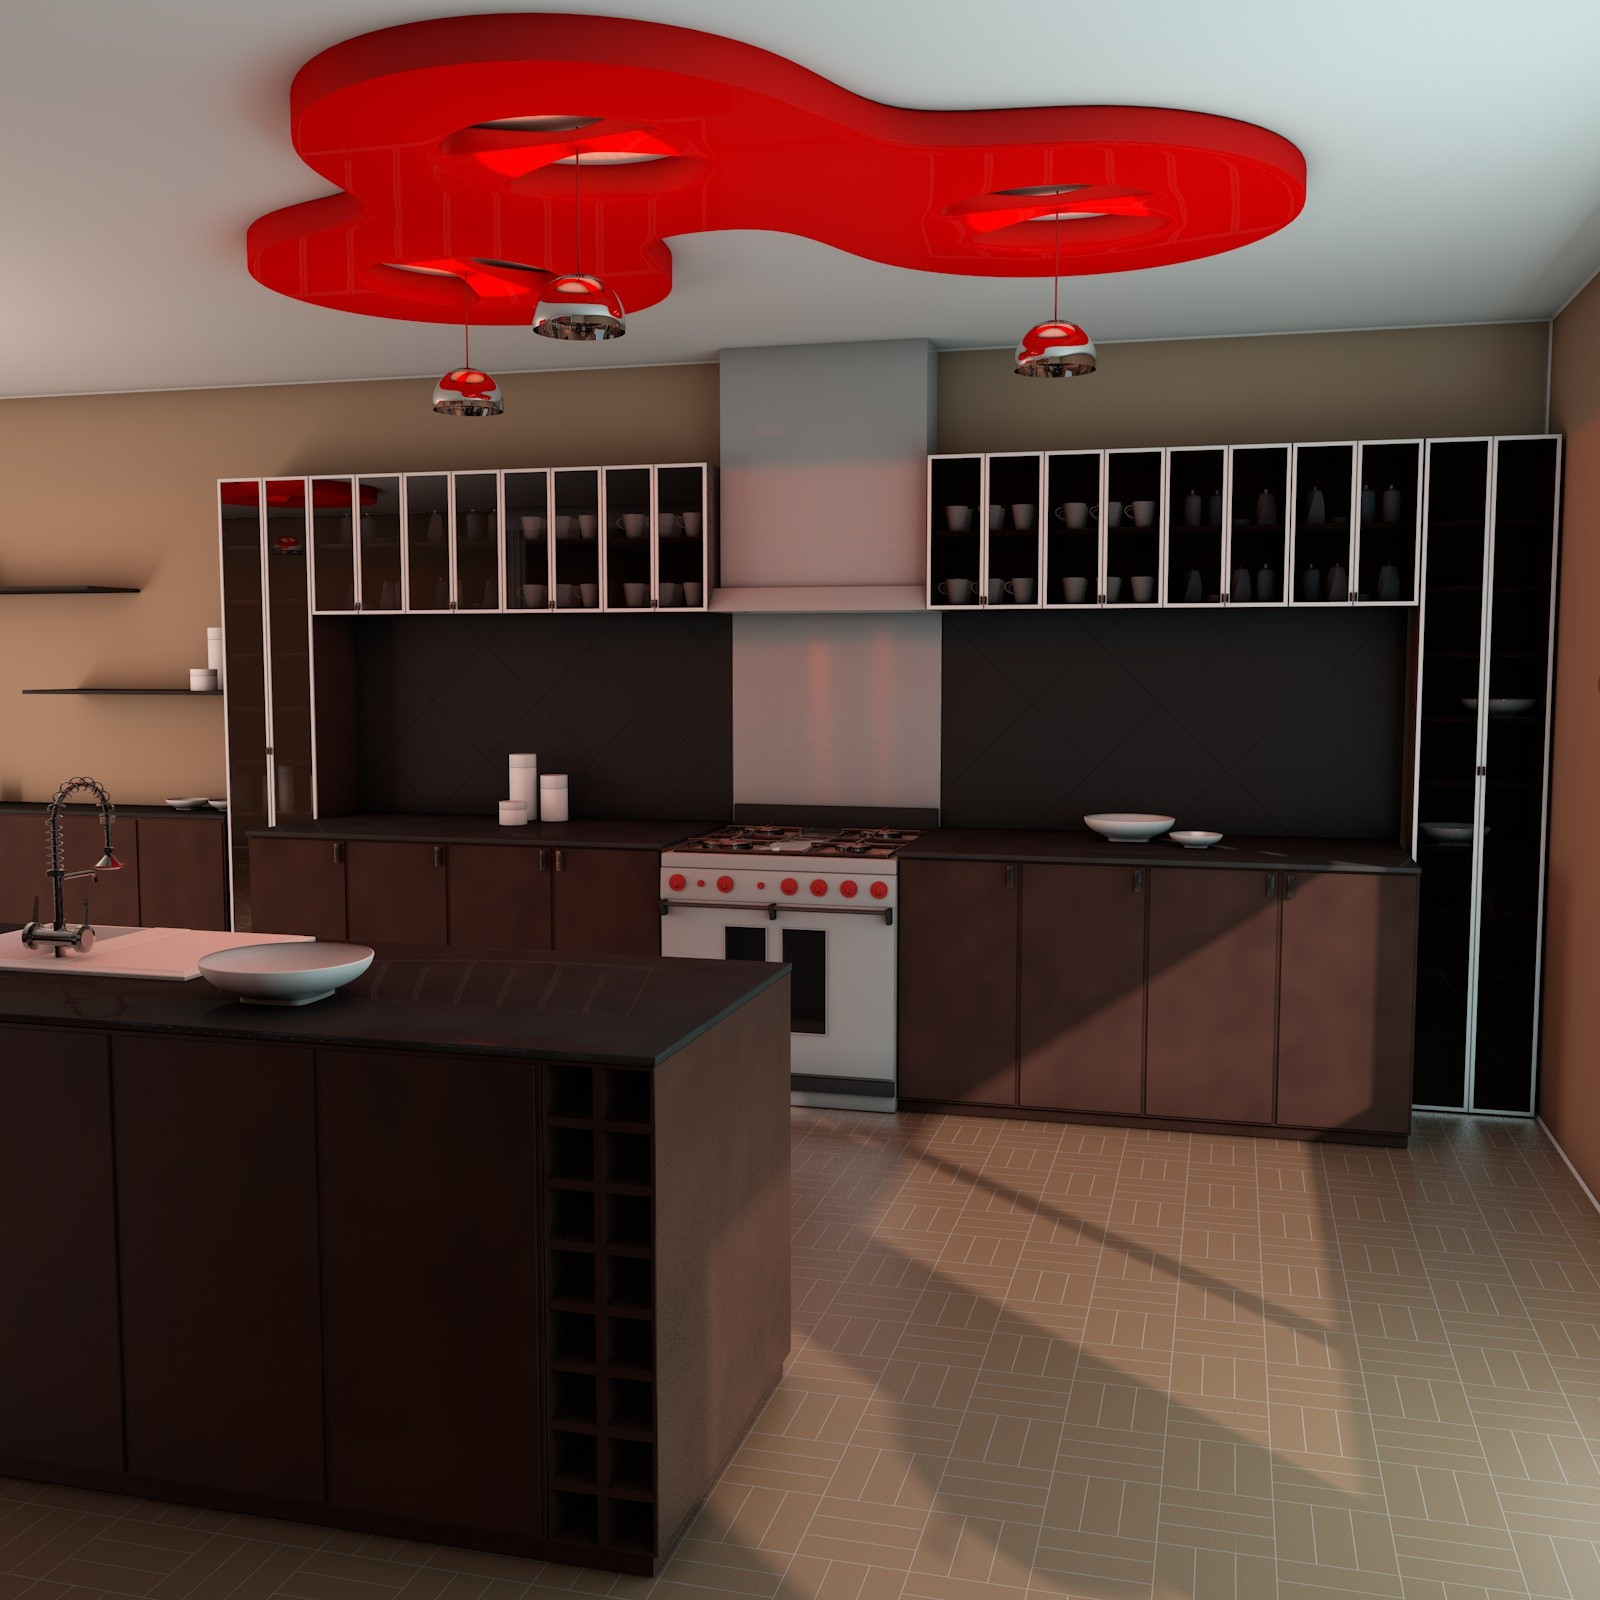 elegant_kitchen_000.jpg